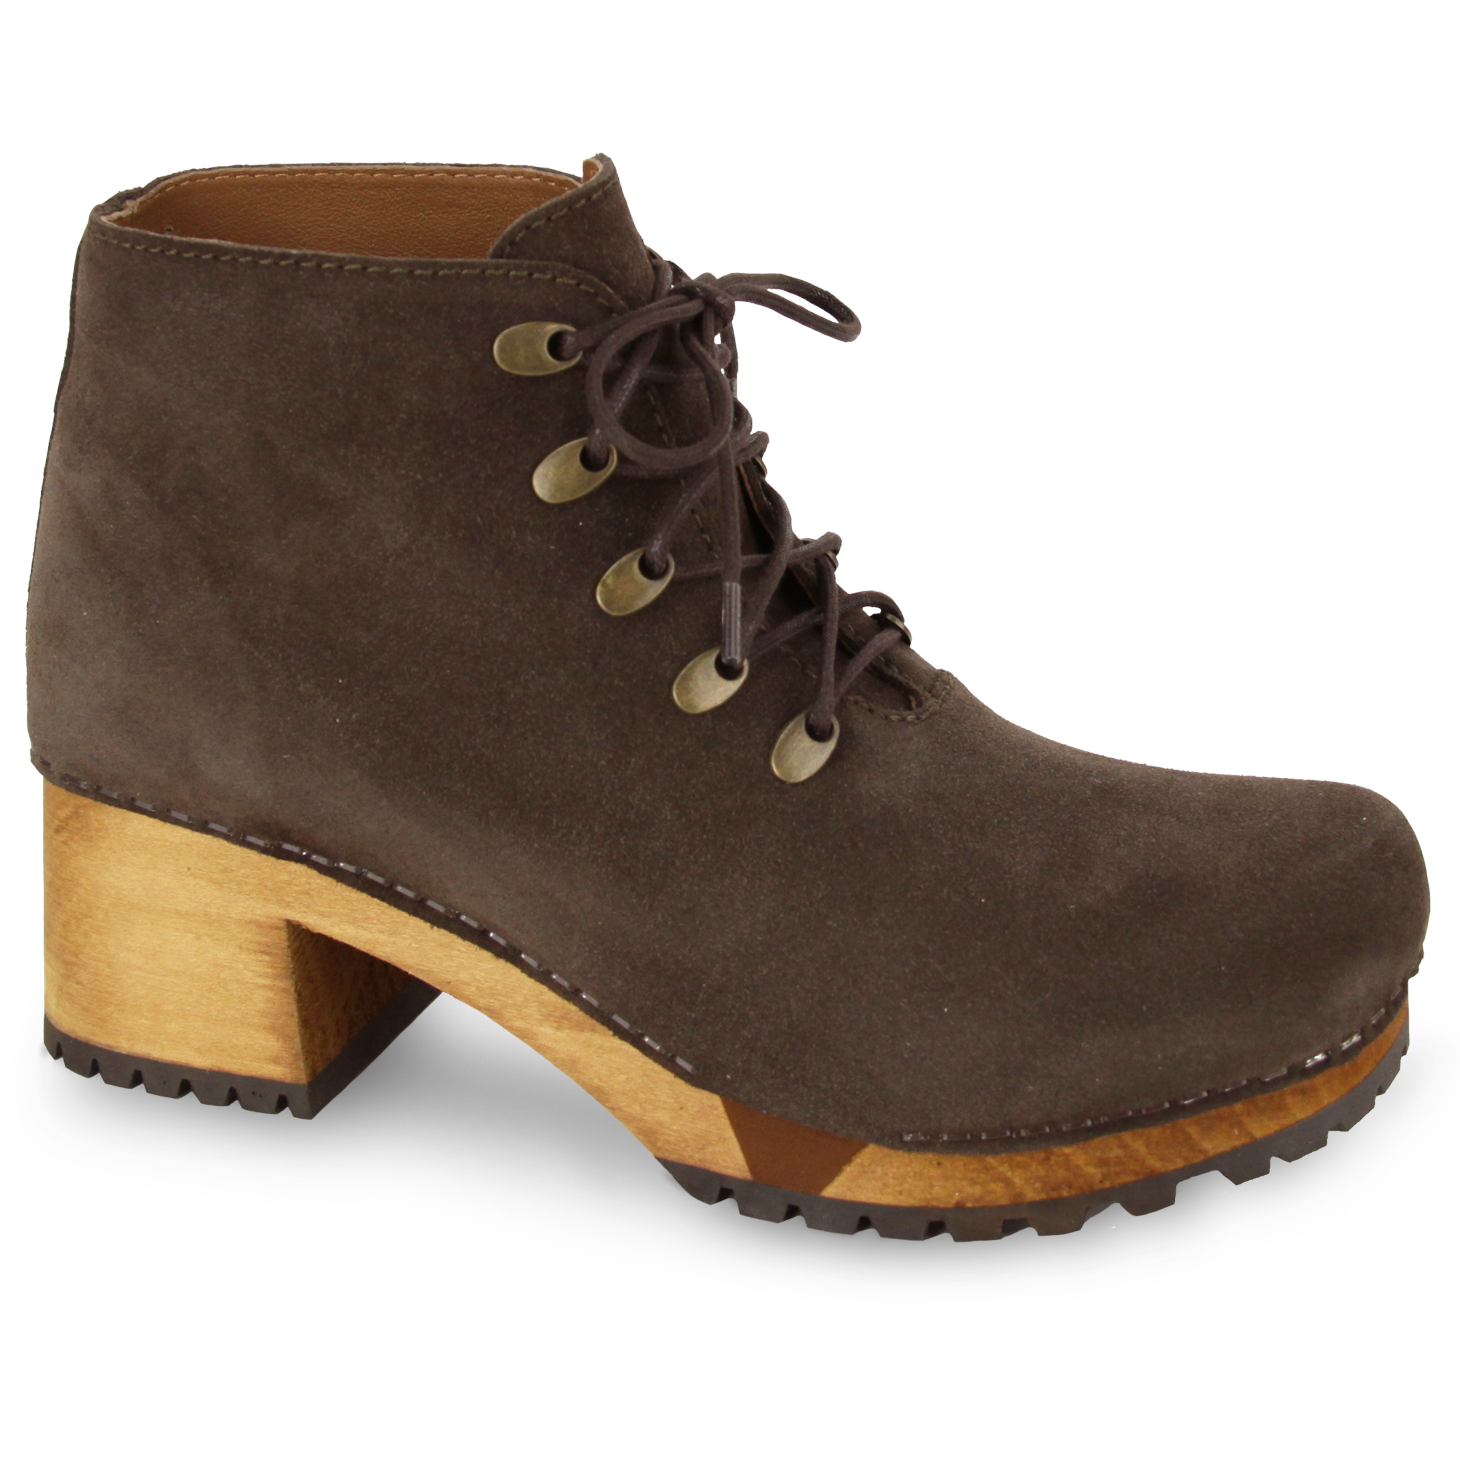 Sanita Ulla Women's in Coffee Boot